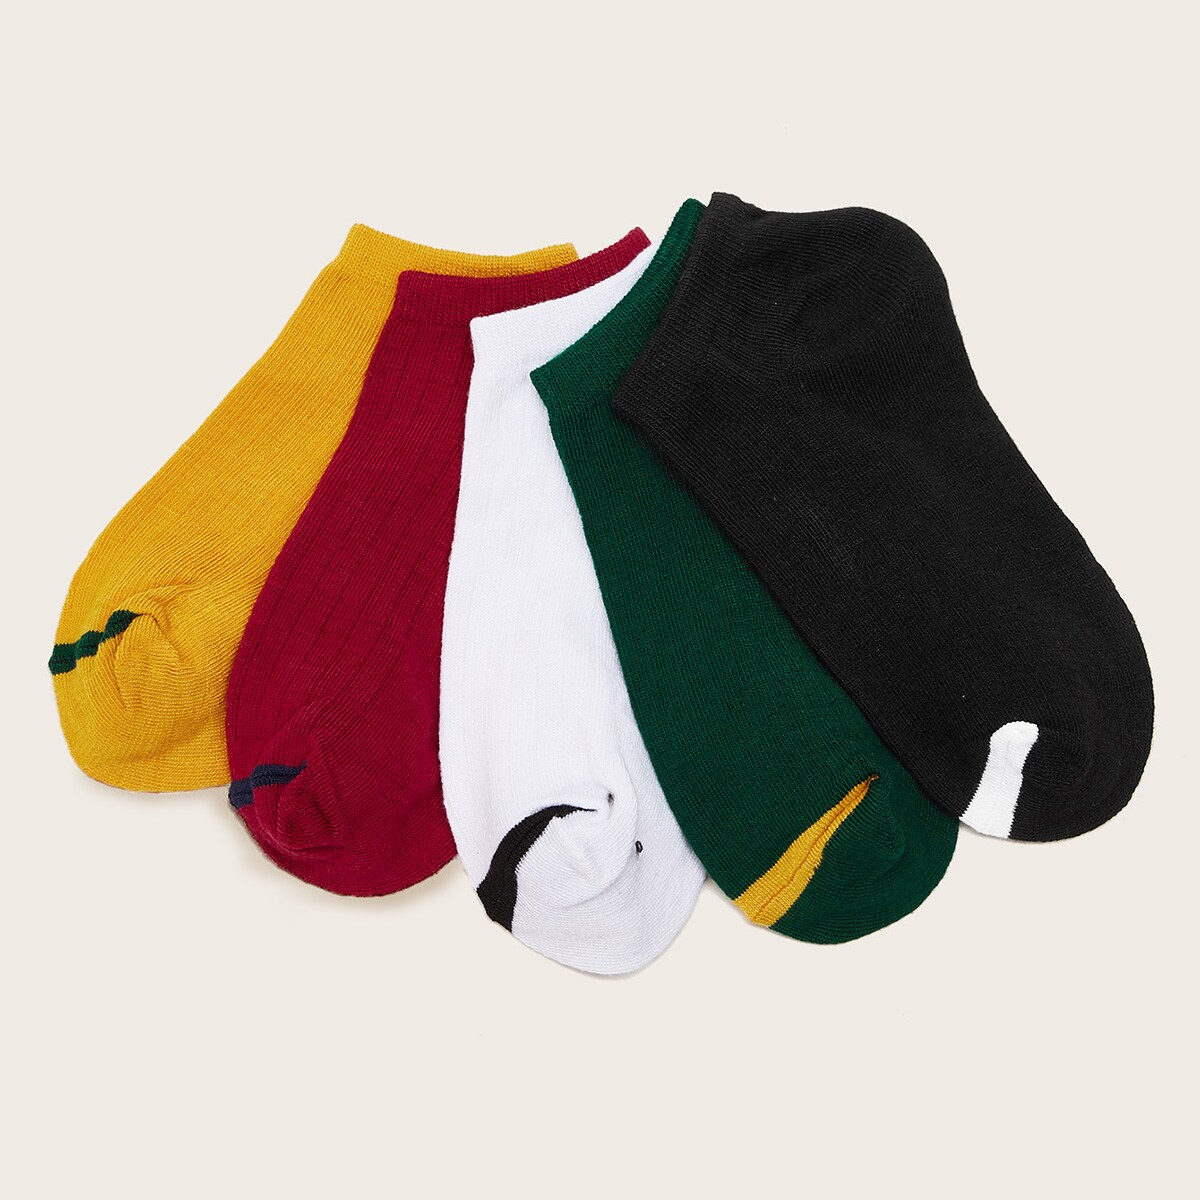 Simple Ankle Socks 5pairs in Multicolor by ROMWE on GOOFASH